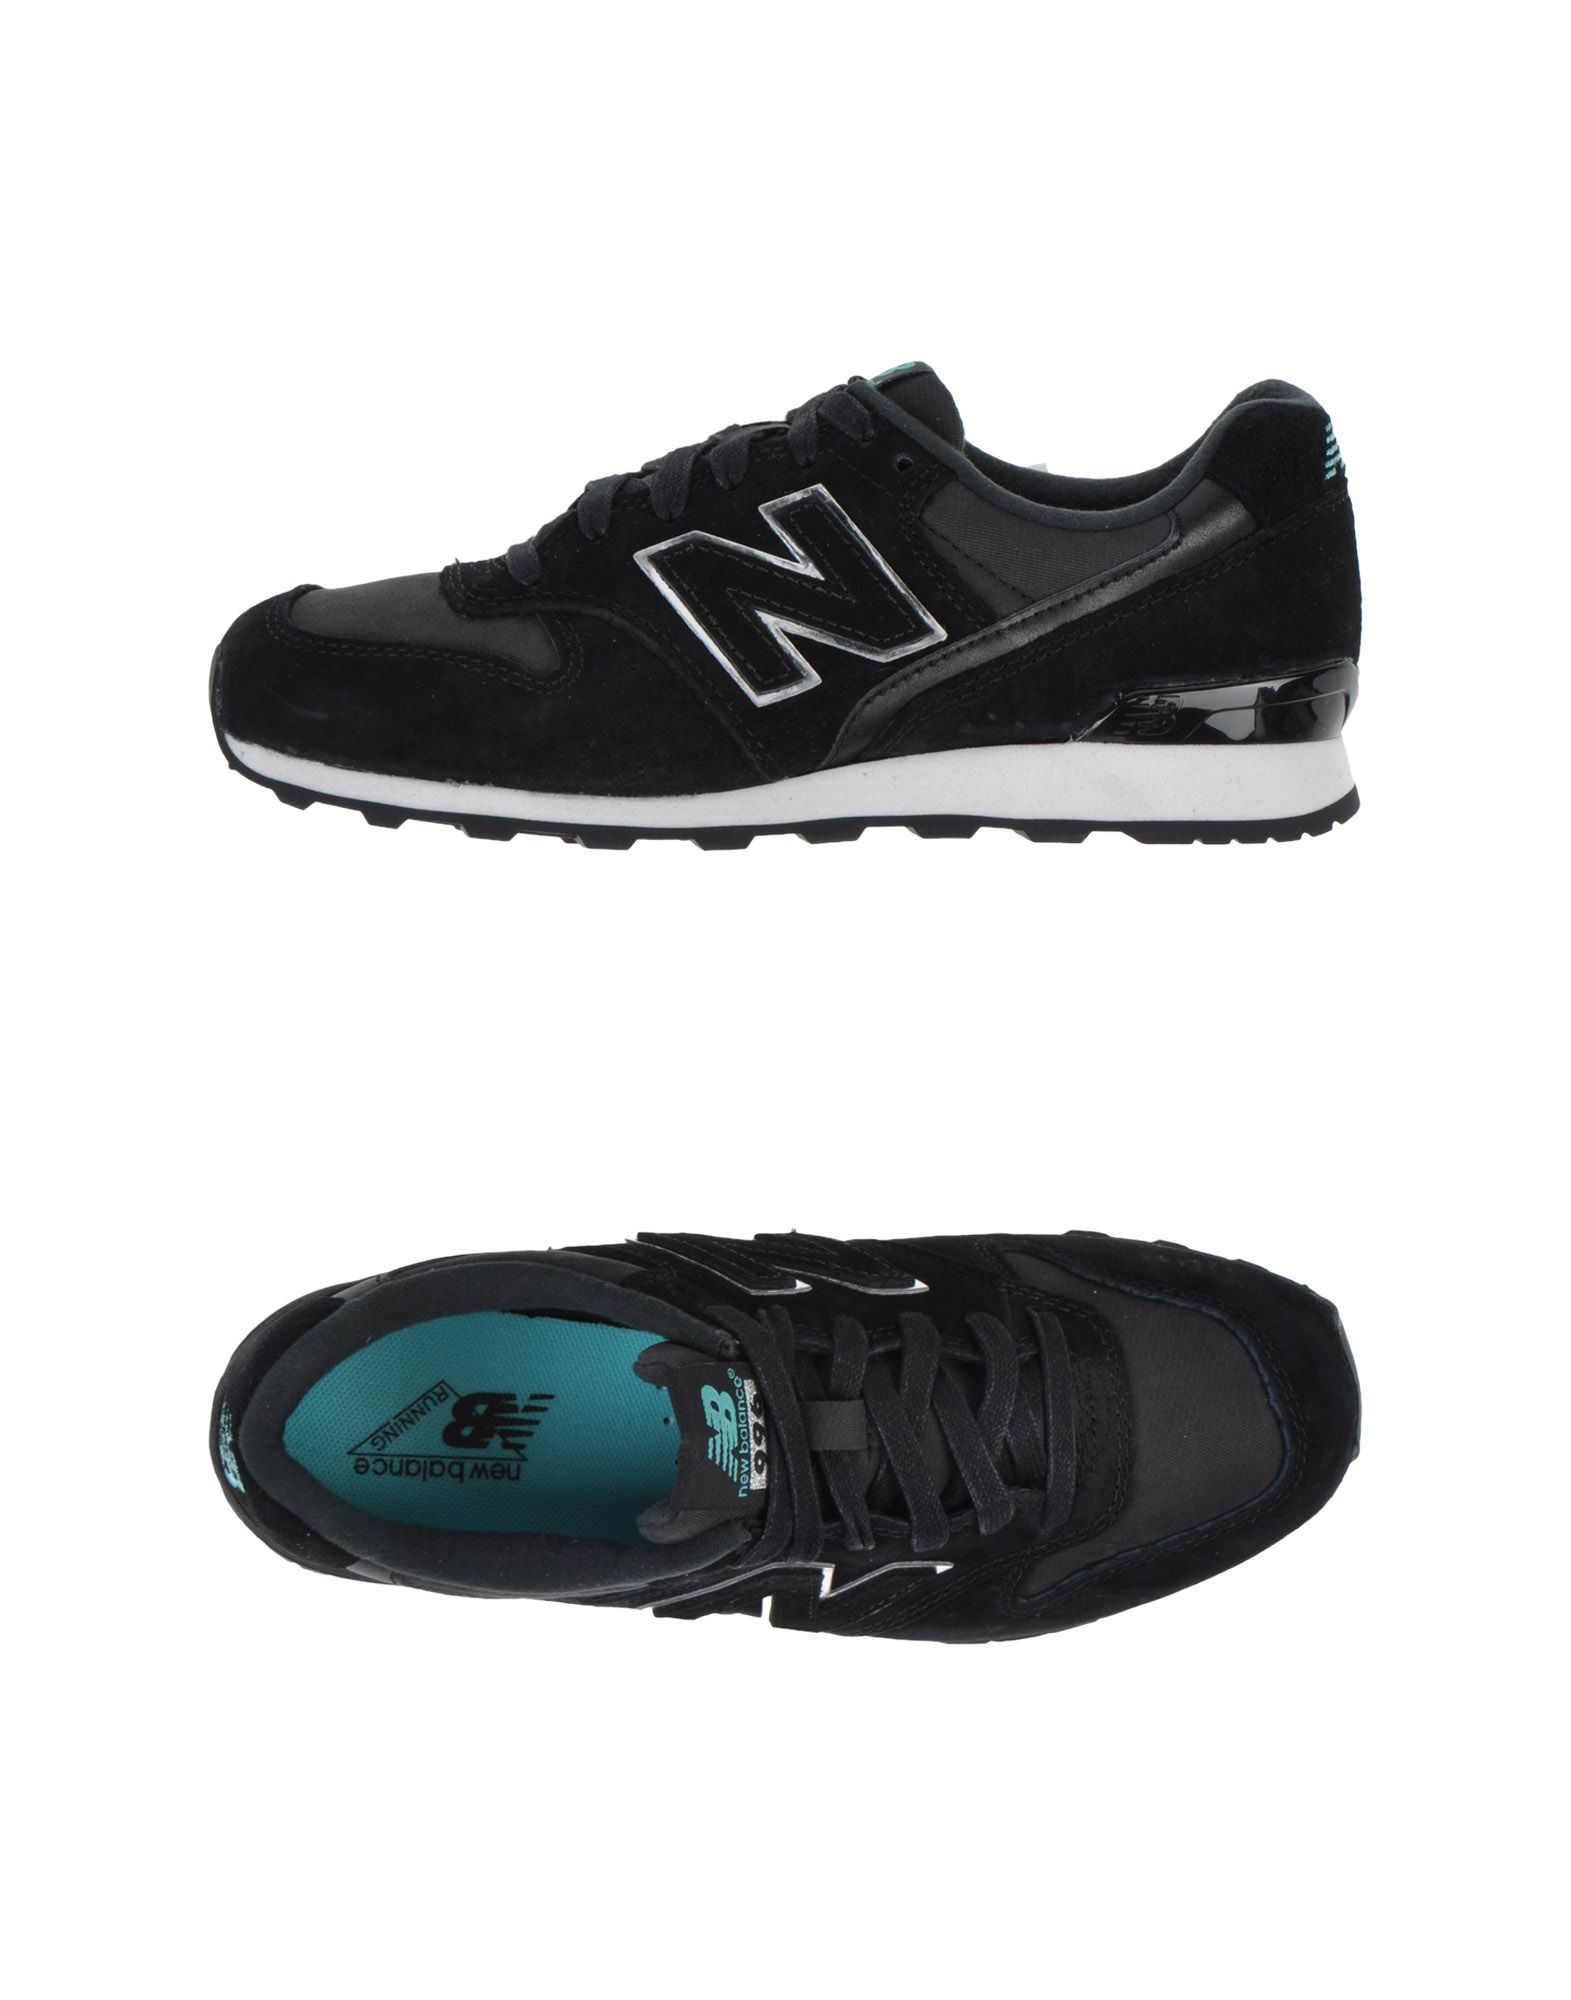 Sneakers New Balance 996 - Femme - Sneakers New Balance sur